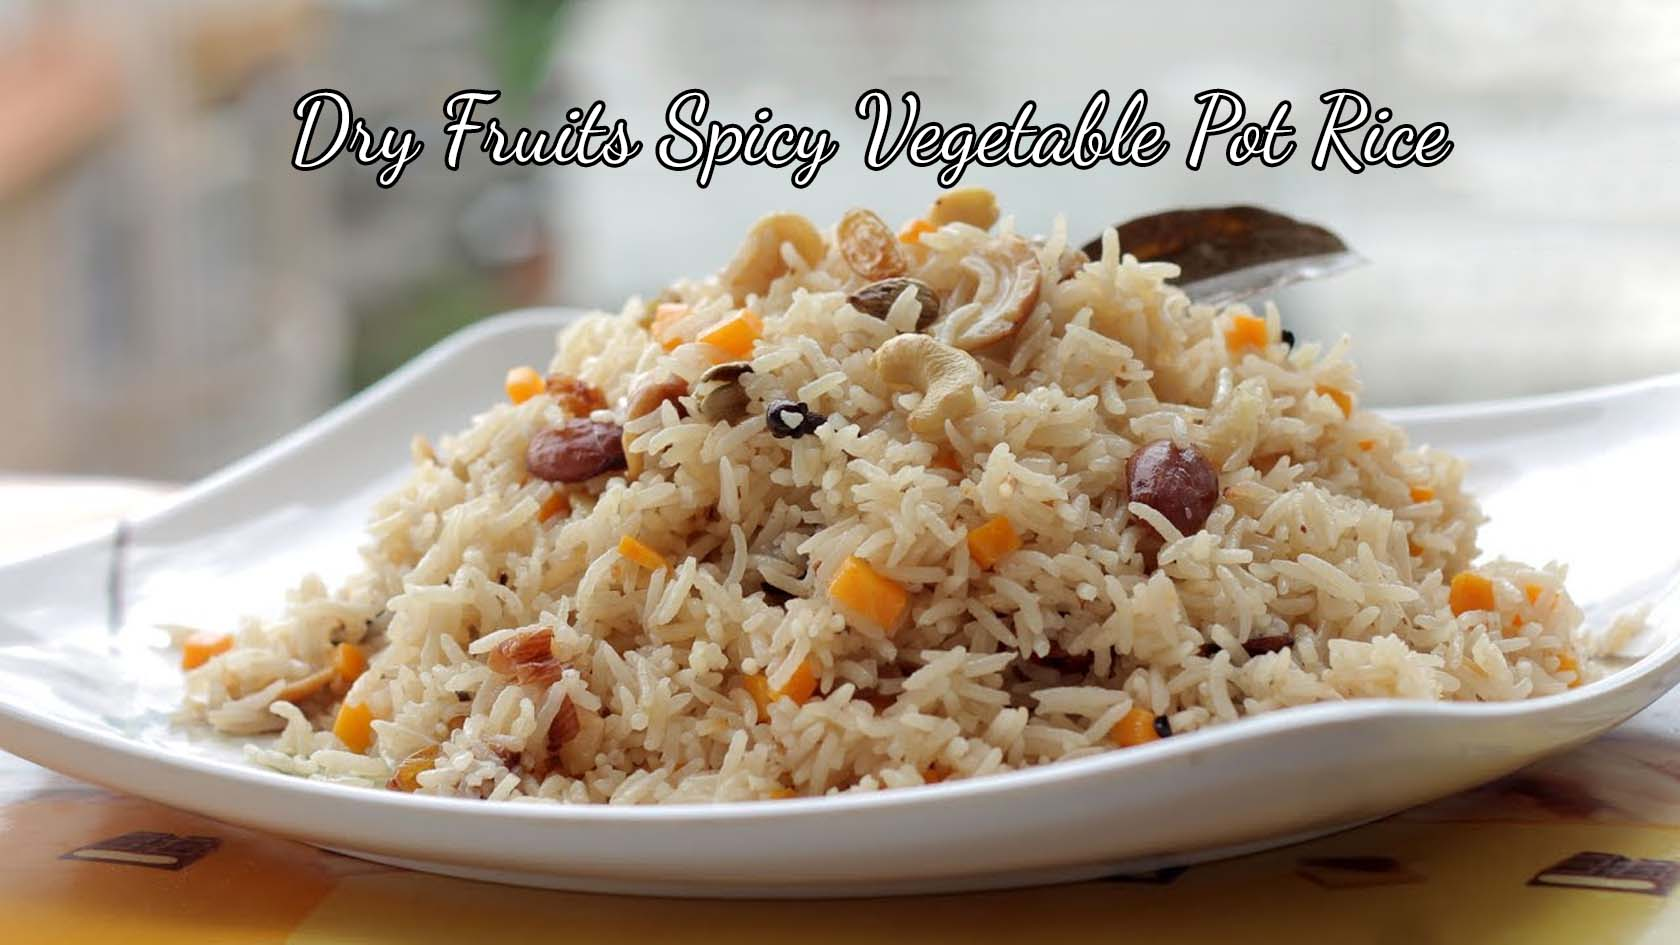 Dry Fruits Spicy Vegetable Pot Rice